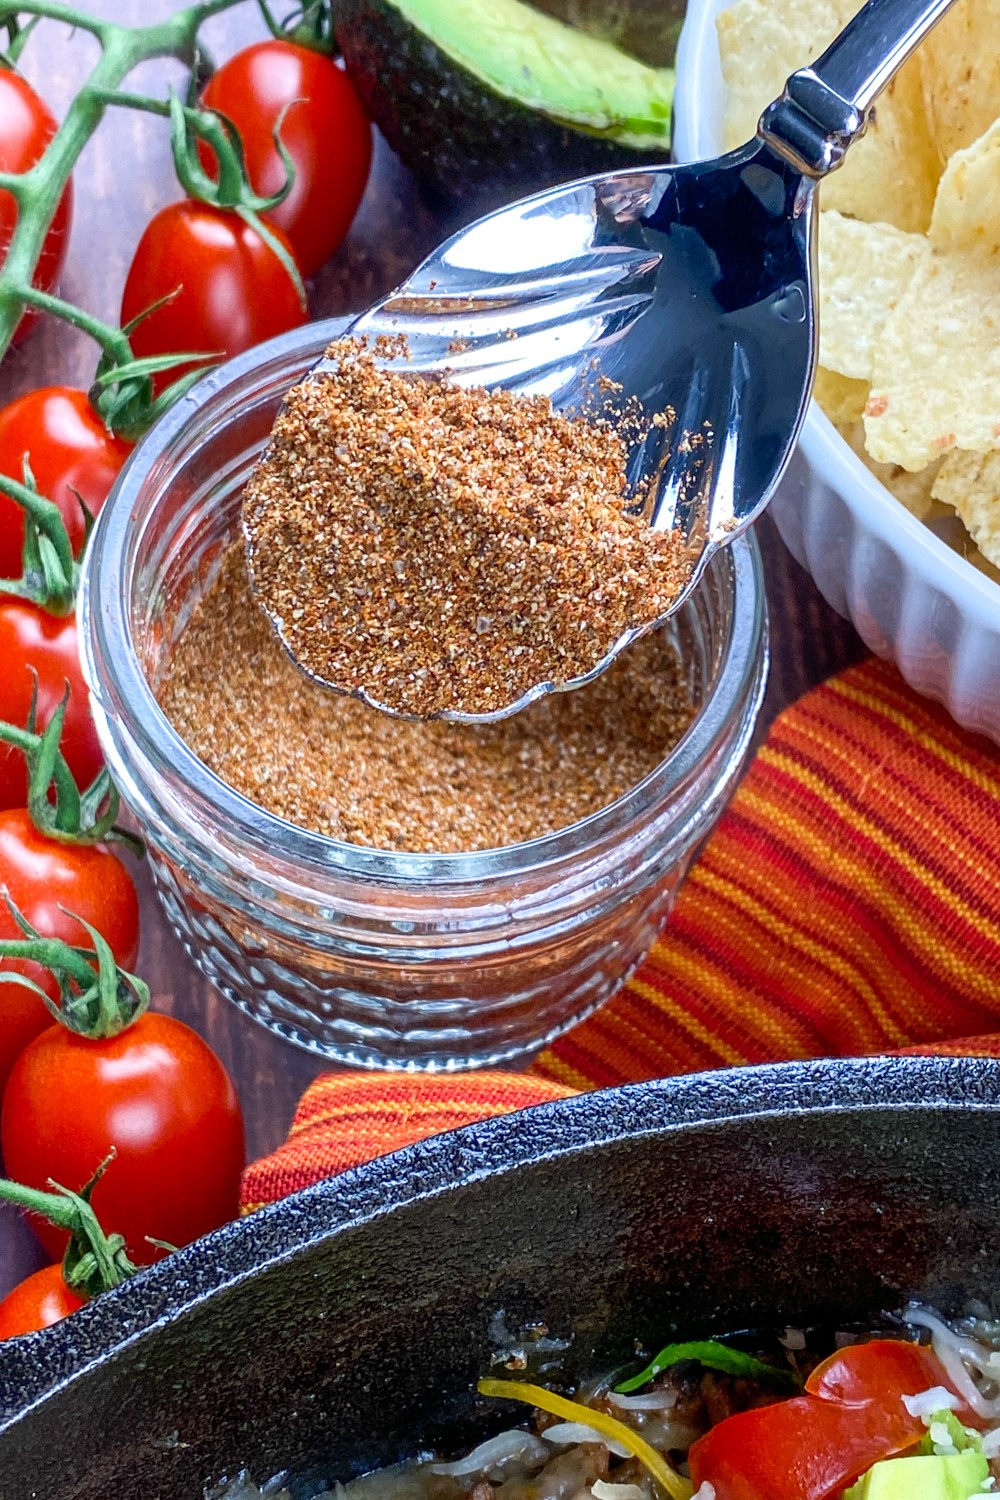 Looking for a low carb taco seasoning recipe? Here's one that is sugar free, gluten free and tastes amazing on any meat or veggies!